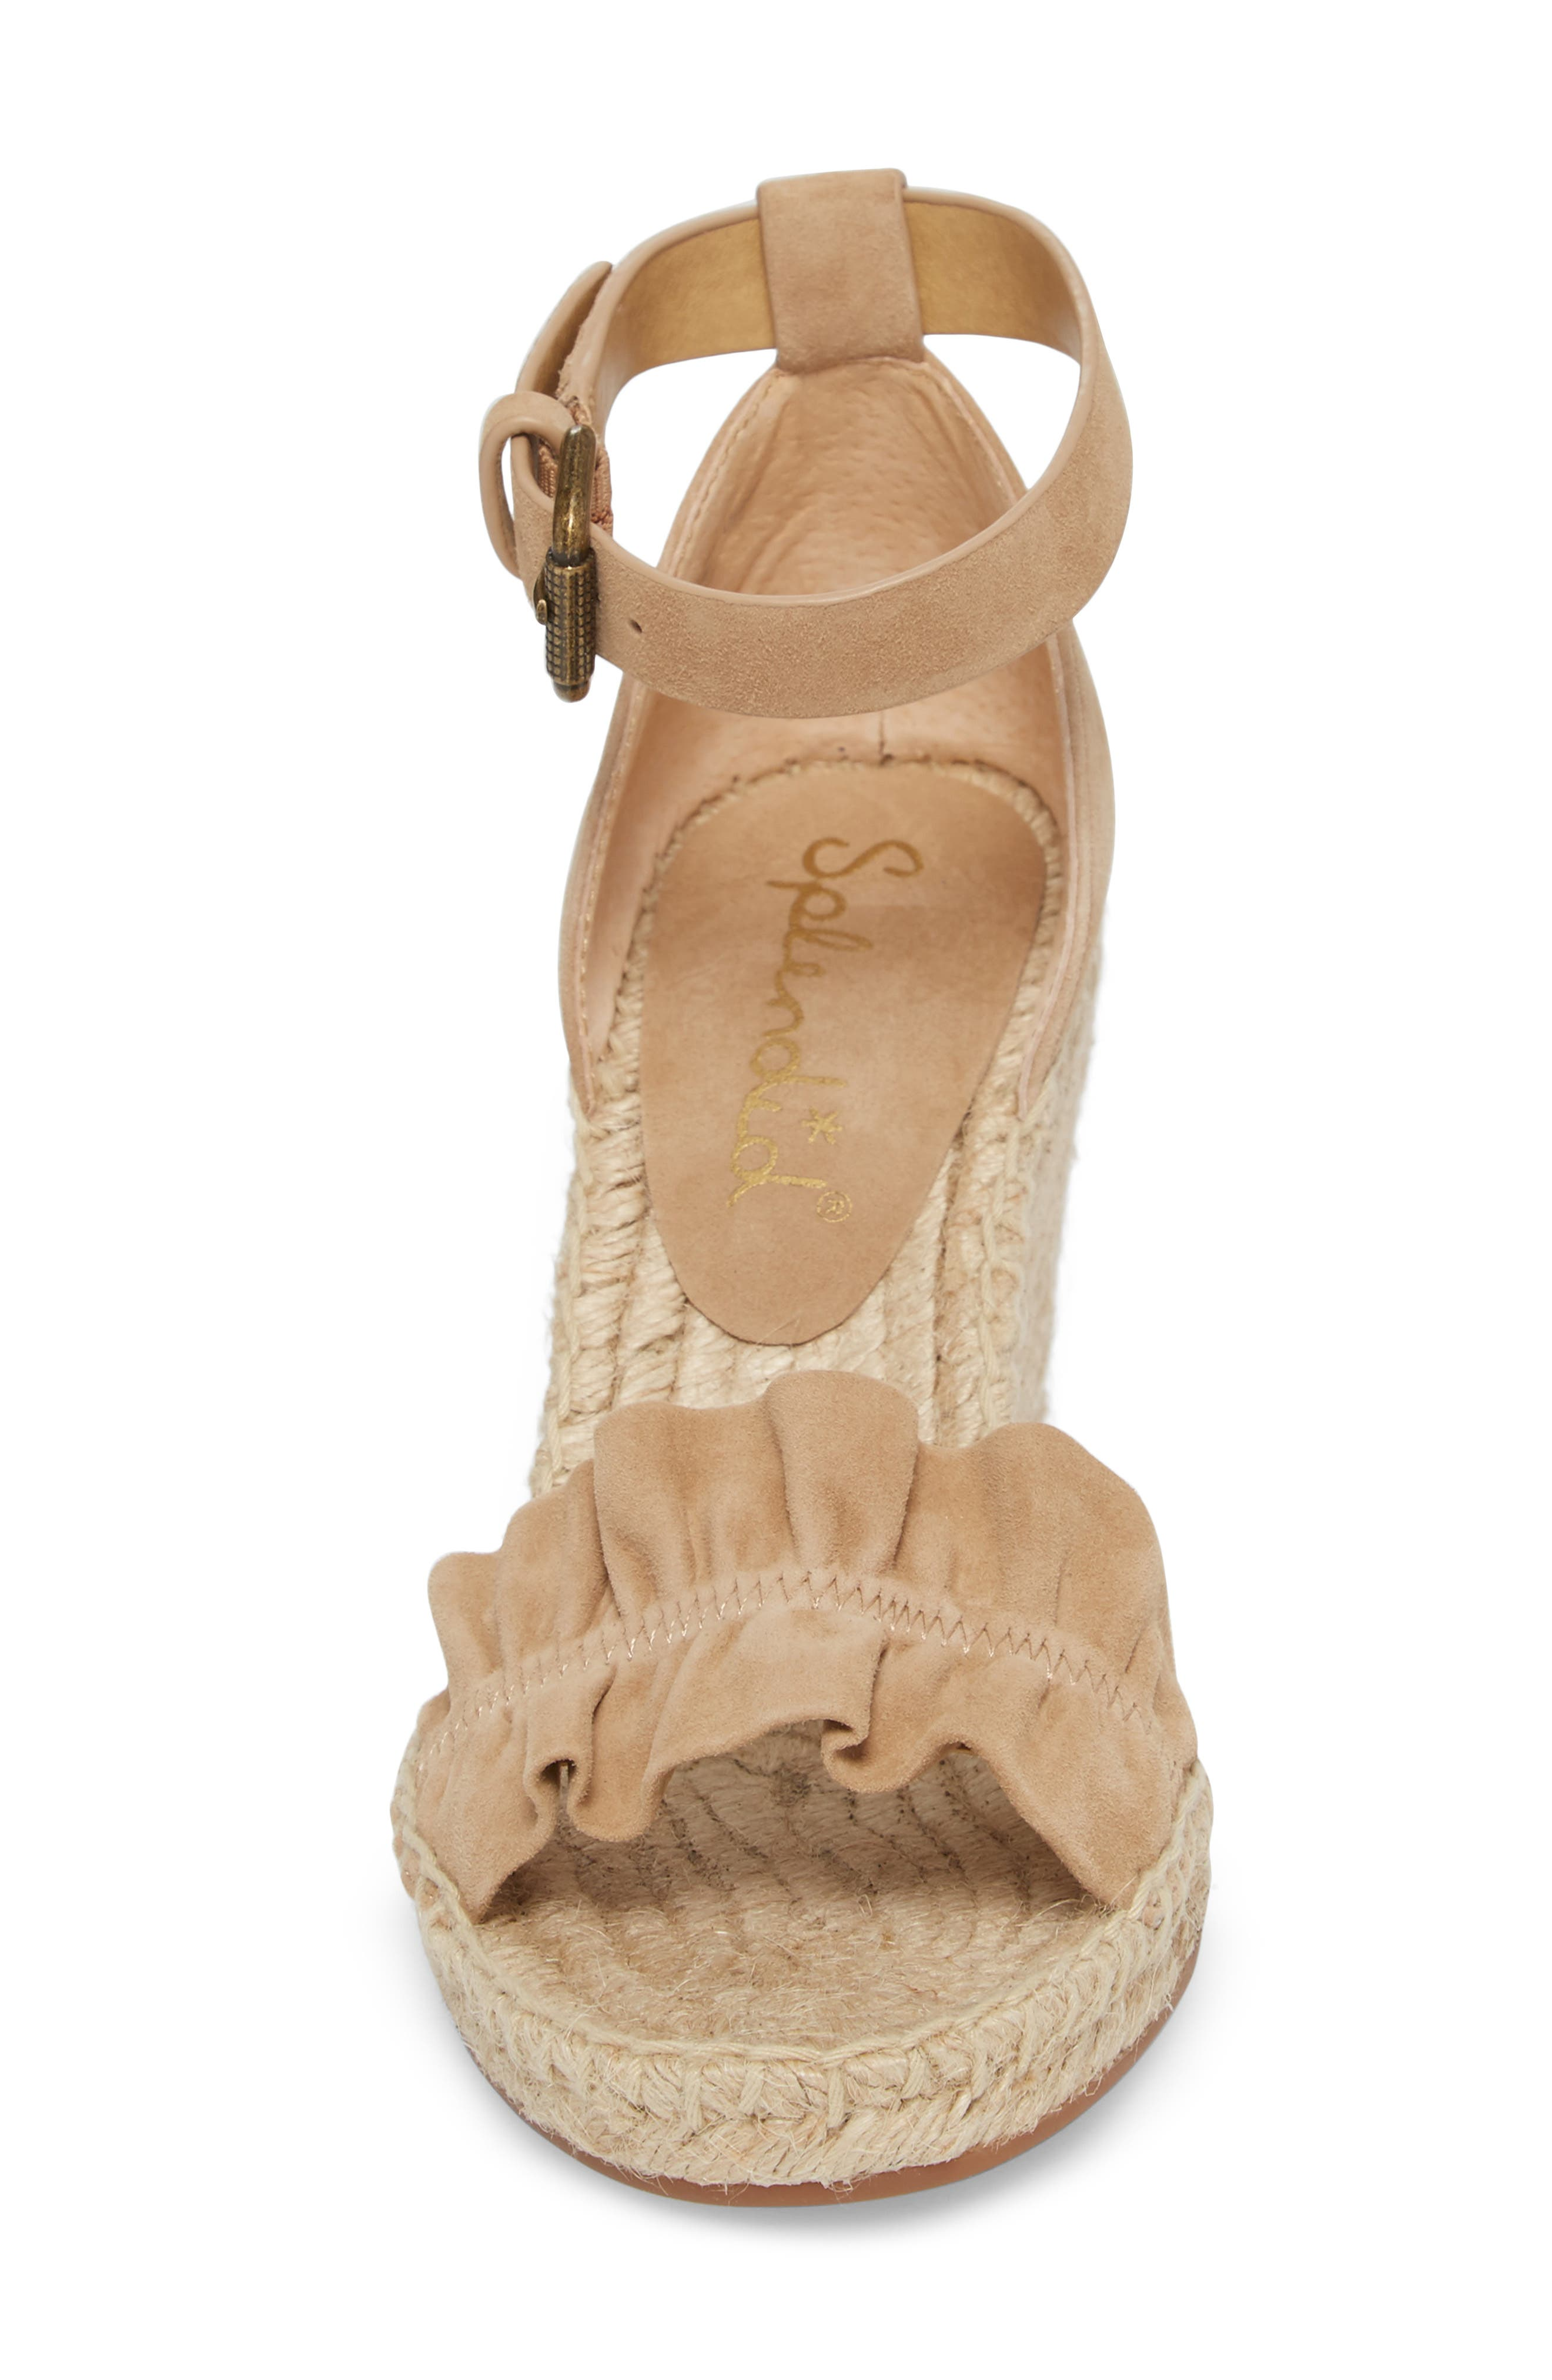 Bedford Espadrille Wedge Sandal,                             Alternate thumbnail 4, color,                             021